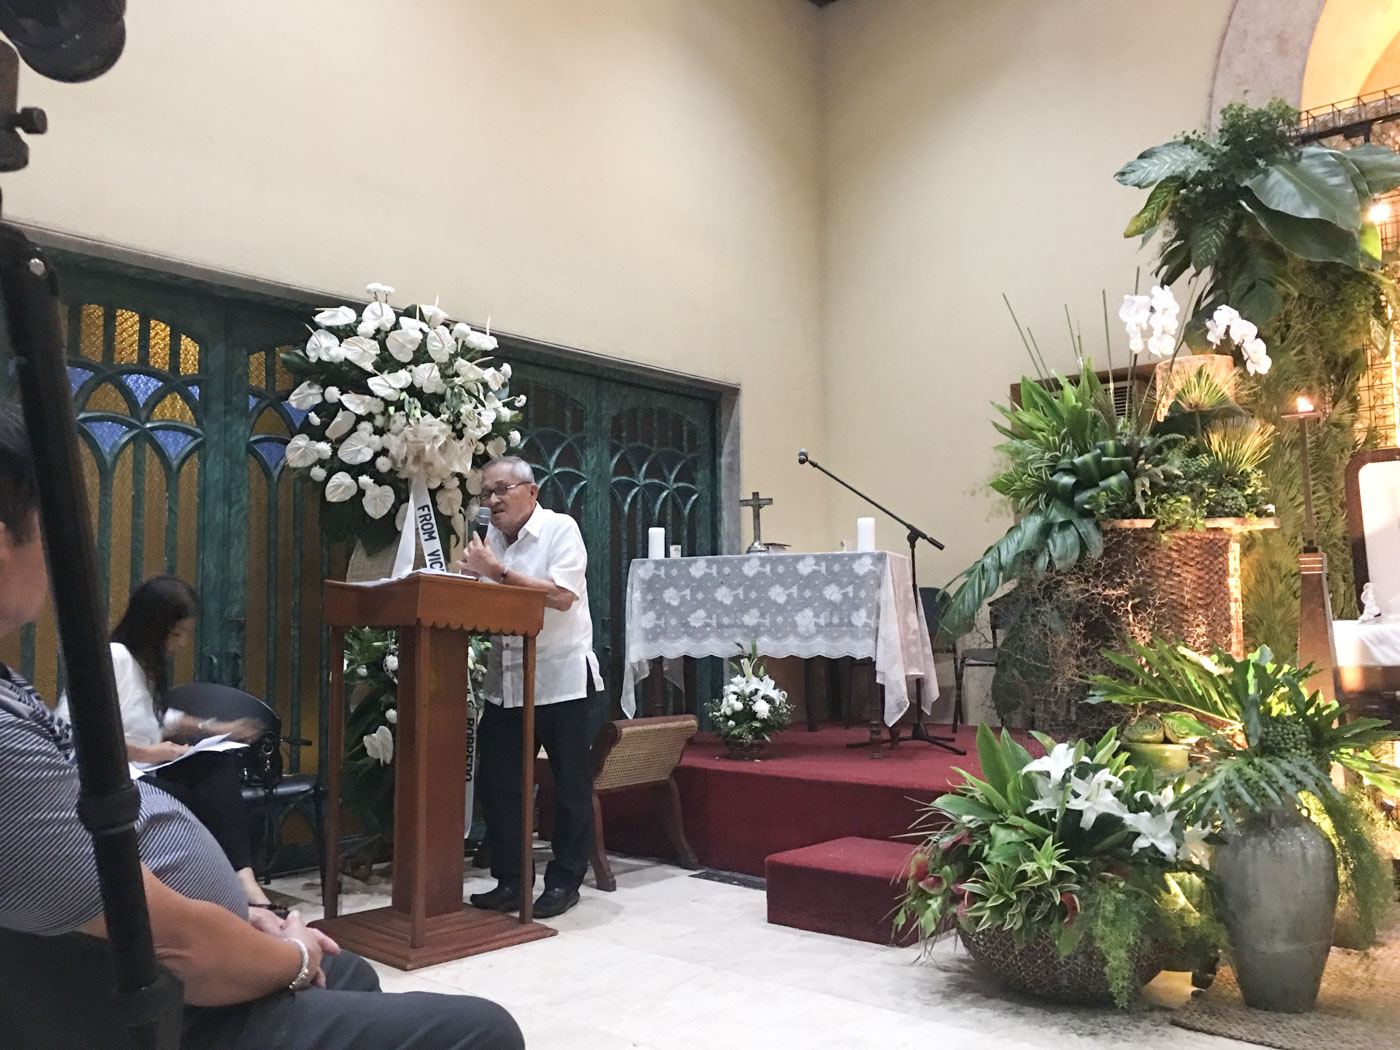 COLLEAGUE. Cesar Buenaventura, vice chairman of DMCI Holdings, gives his eulogy for the late DM Consunji. Photo by Lala Rimando/Rappler